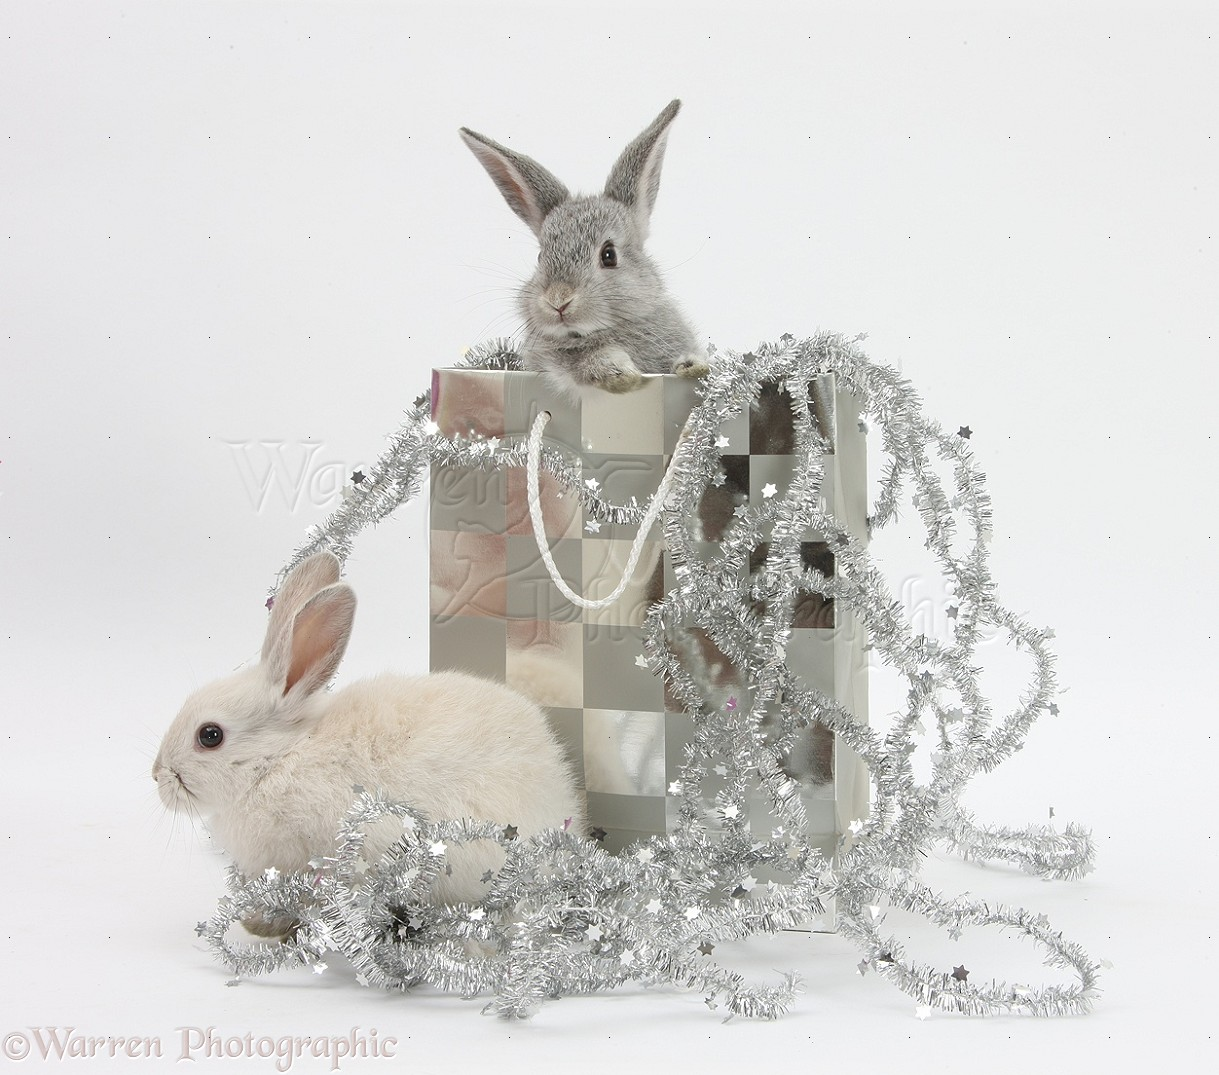 WP29352 Two baby silver rabbits in a gift bag with Christmas tinsel.